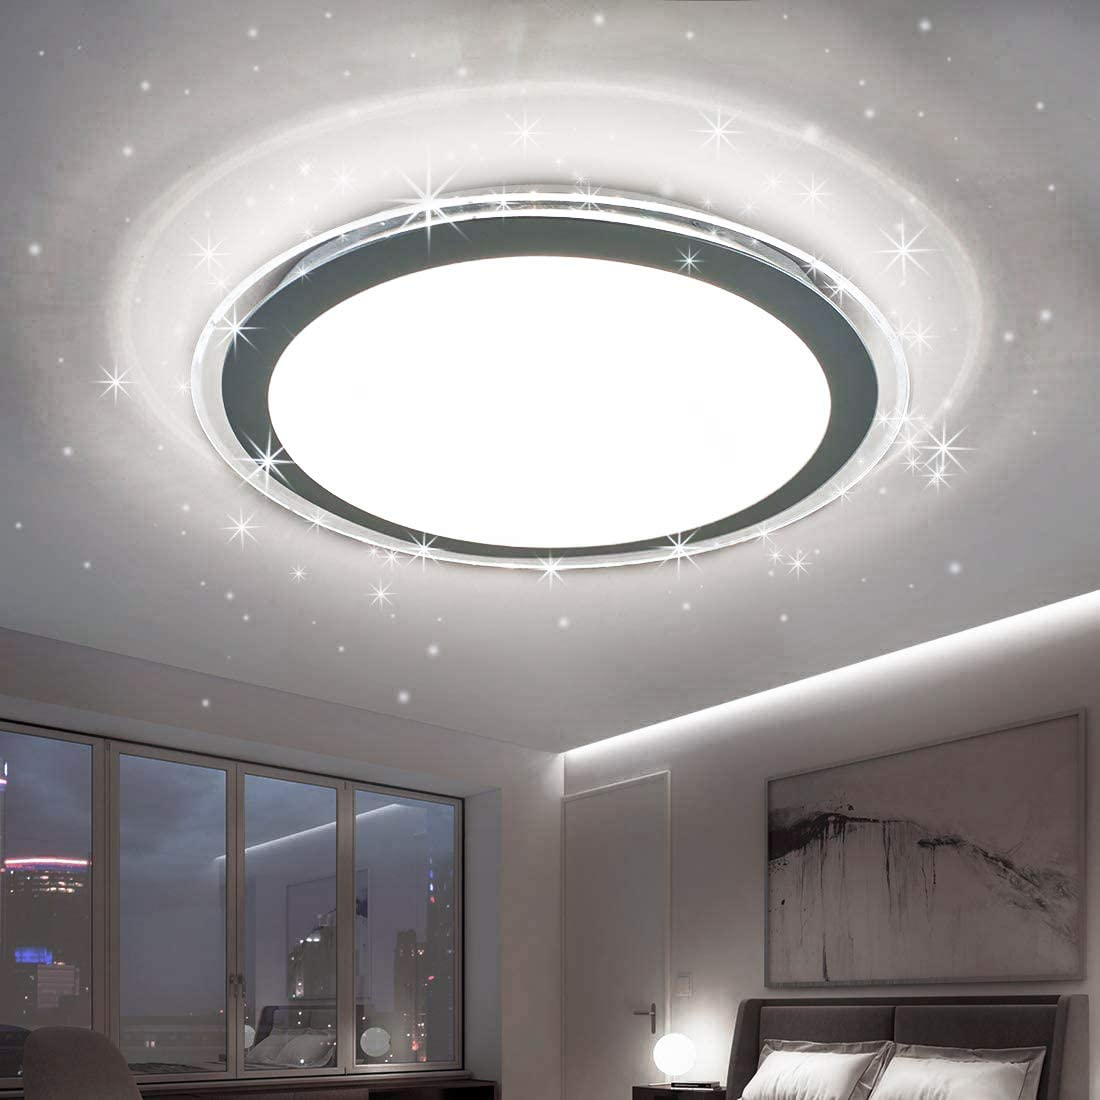 Amazon Com Dllt 22w Led Flush Mount Ceiling Light Fixture Round Bright Disk Light Panel Wall Ceiling Down Lights 6000k Cool White Perfect For Kitchen Dining Room Balcony Study Bedroom Home Improvement